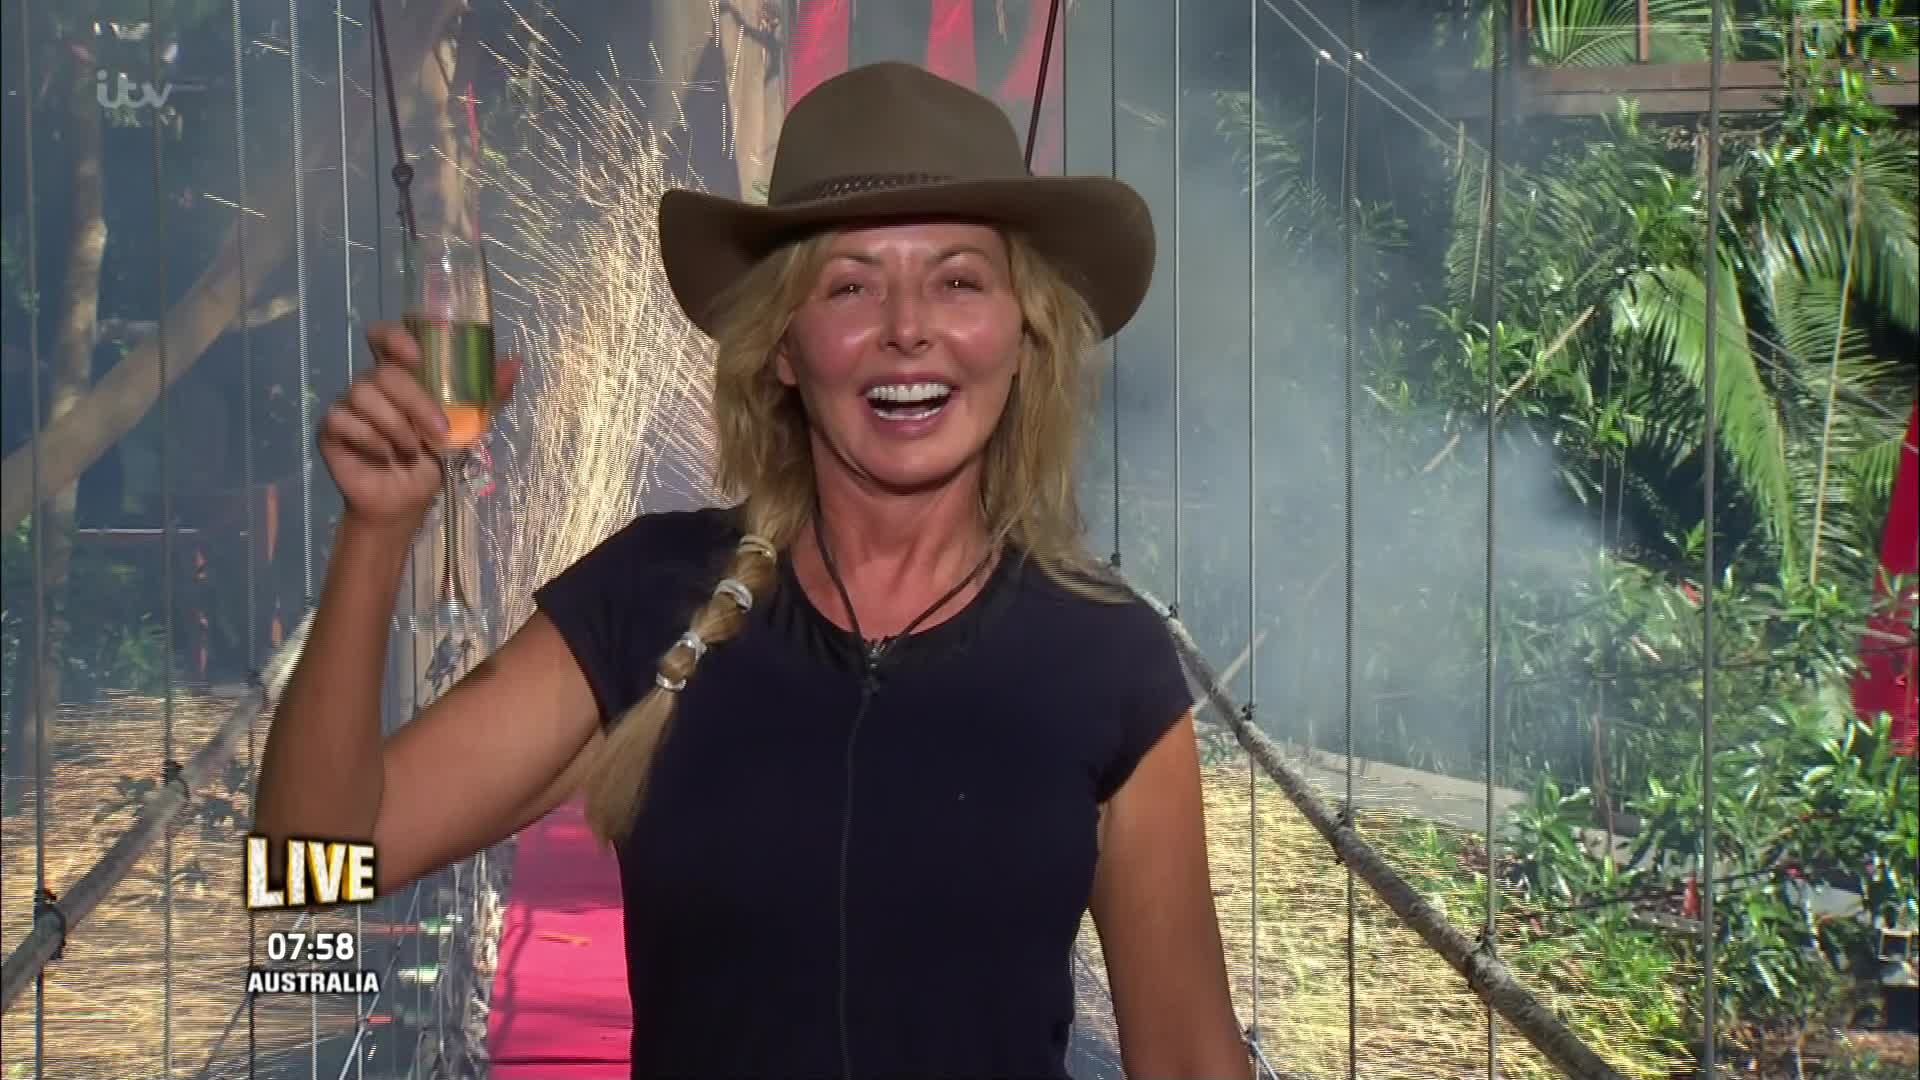 Carol Vorderman has been voted out of I'm A Celebrity (Picture: ITV)